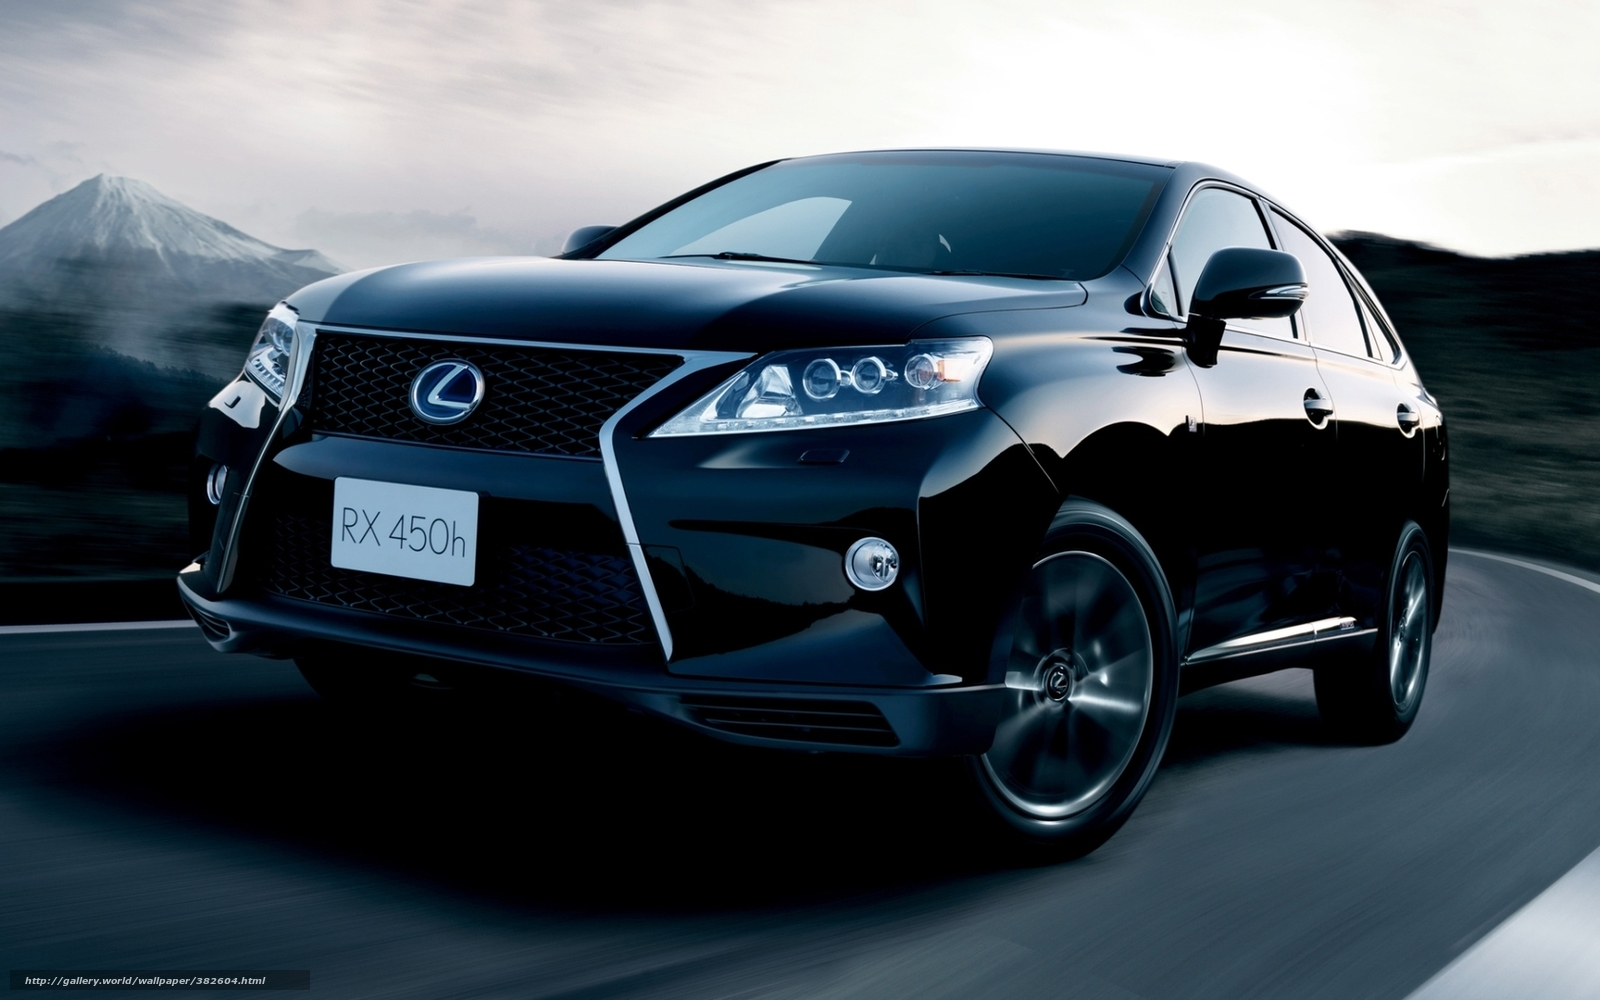 Download wallpaper lexus crossover jeep front free desktop wallpaper in the resolution 1680x1050 picture 382604